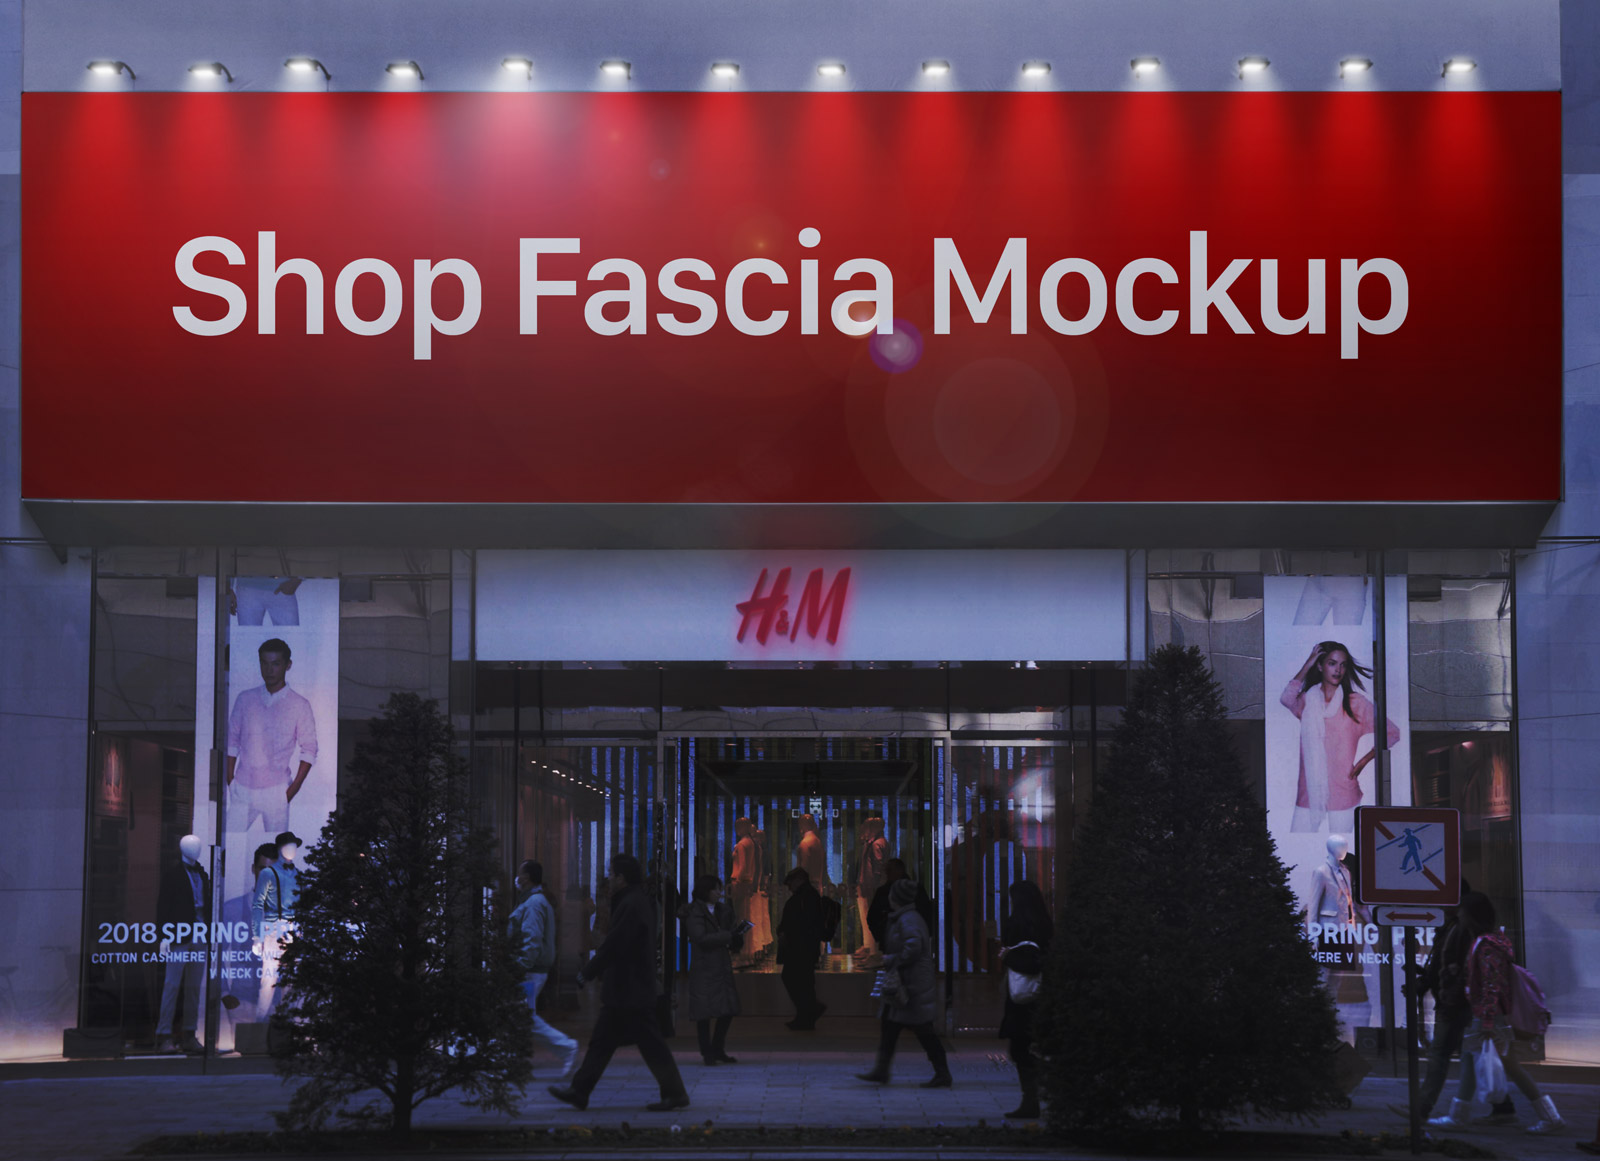 Free-Shop-Fascia-Billboard-Mockup-PSD-file